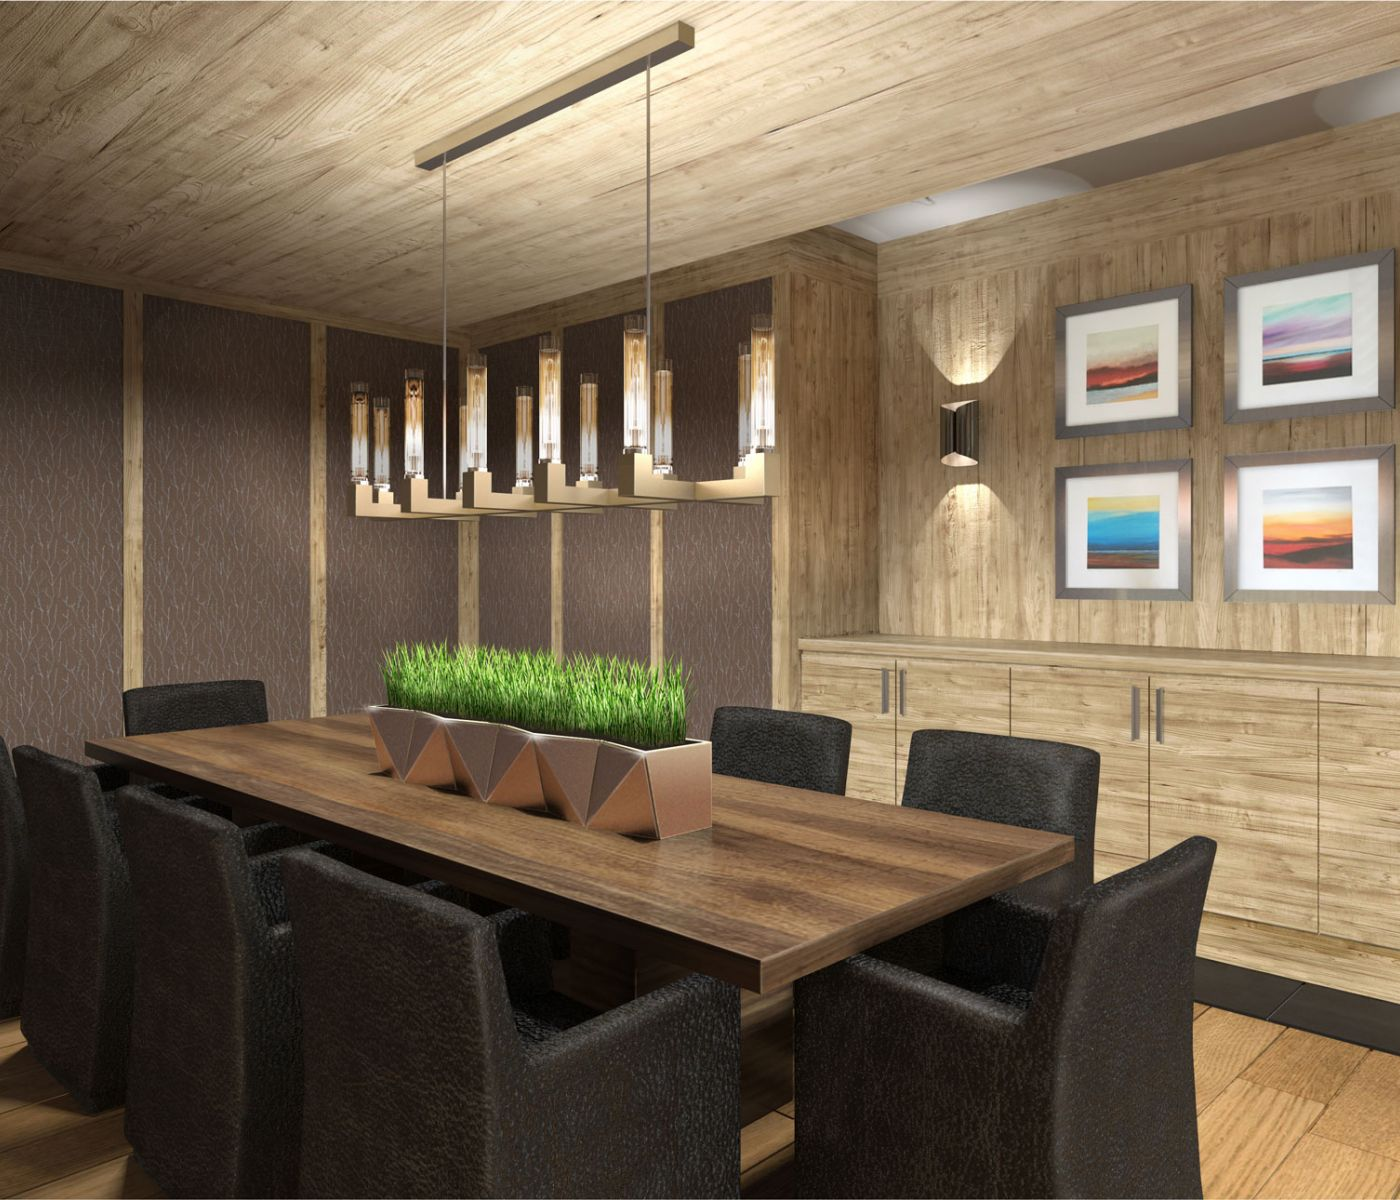 Apartments near nyc westchester stamford jlofts greenwich for Restaurants with private rooms near me